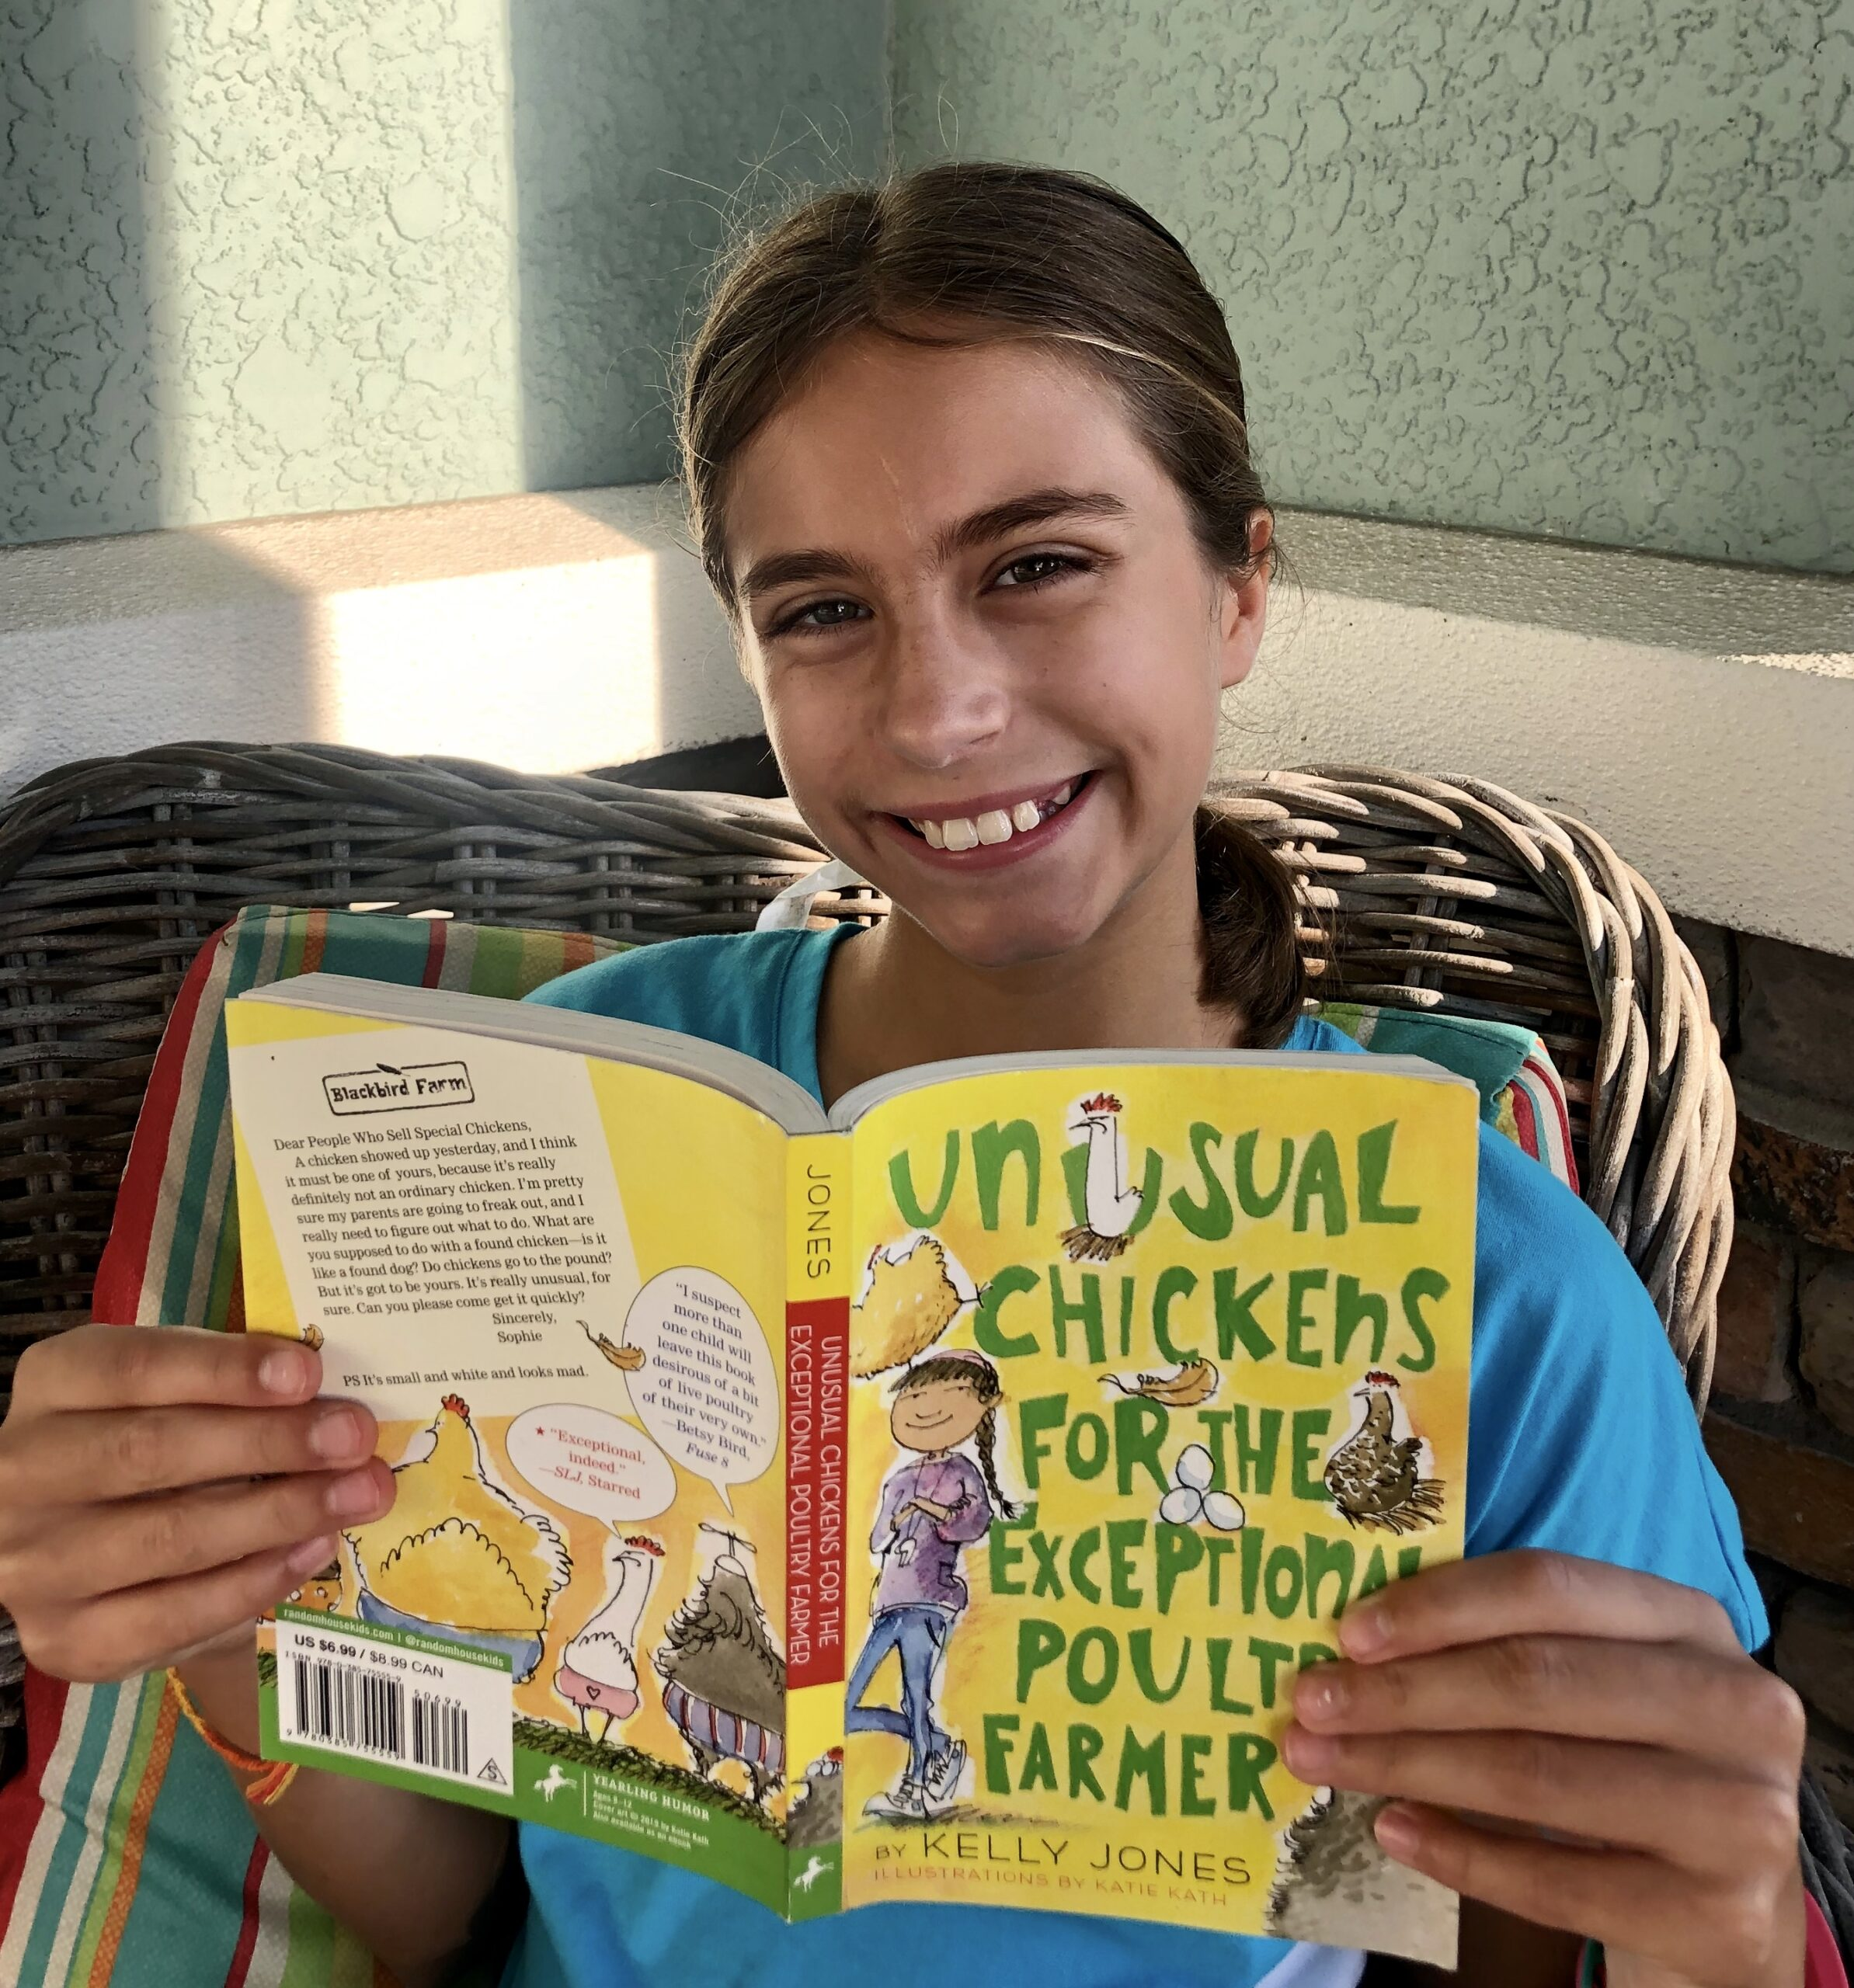 Girl smiling while reading Unusual chickens for the Exceptional Poultry Farmer for this book review.